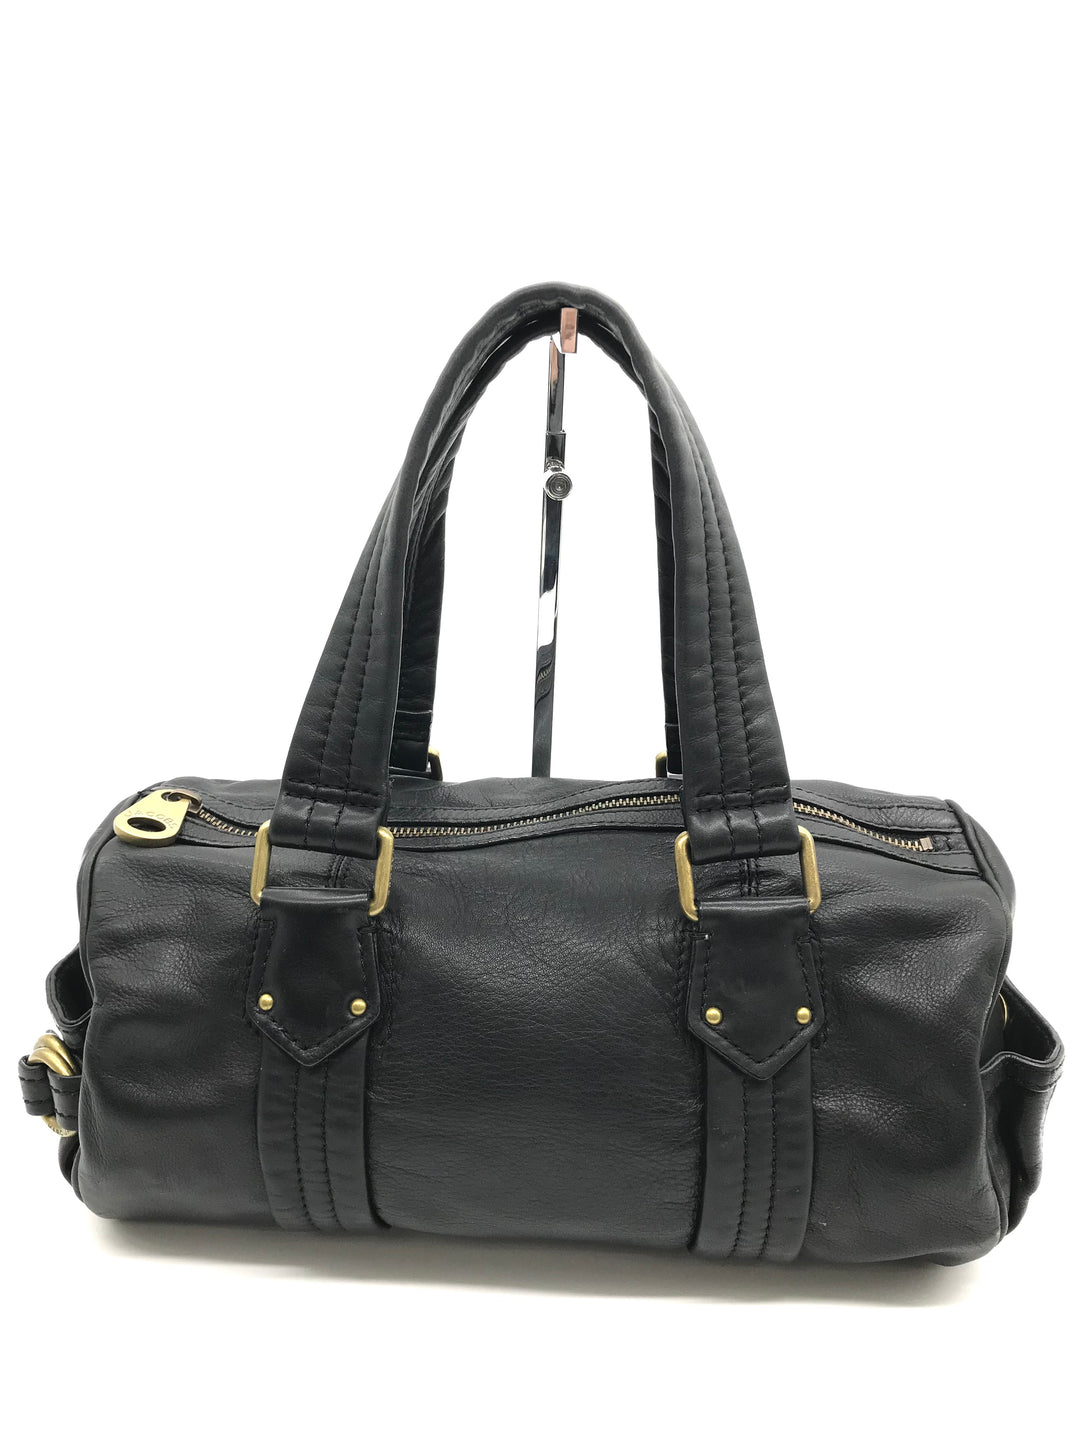 "Primary Photo - BRAND: MARC JACOBS <BR>STYLE: HANDBAG DESIGNER <BR>COLOR: BLACK <BR>SIZE: MEDIUM 7.5""H X 14""L X 7.5""W<BR>HANDLE DROP: 7.5""<BR>SKU: 262-26275-64508<BR>IN GREAT CONDITION • AS IS •"